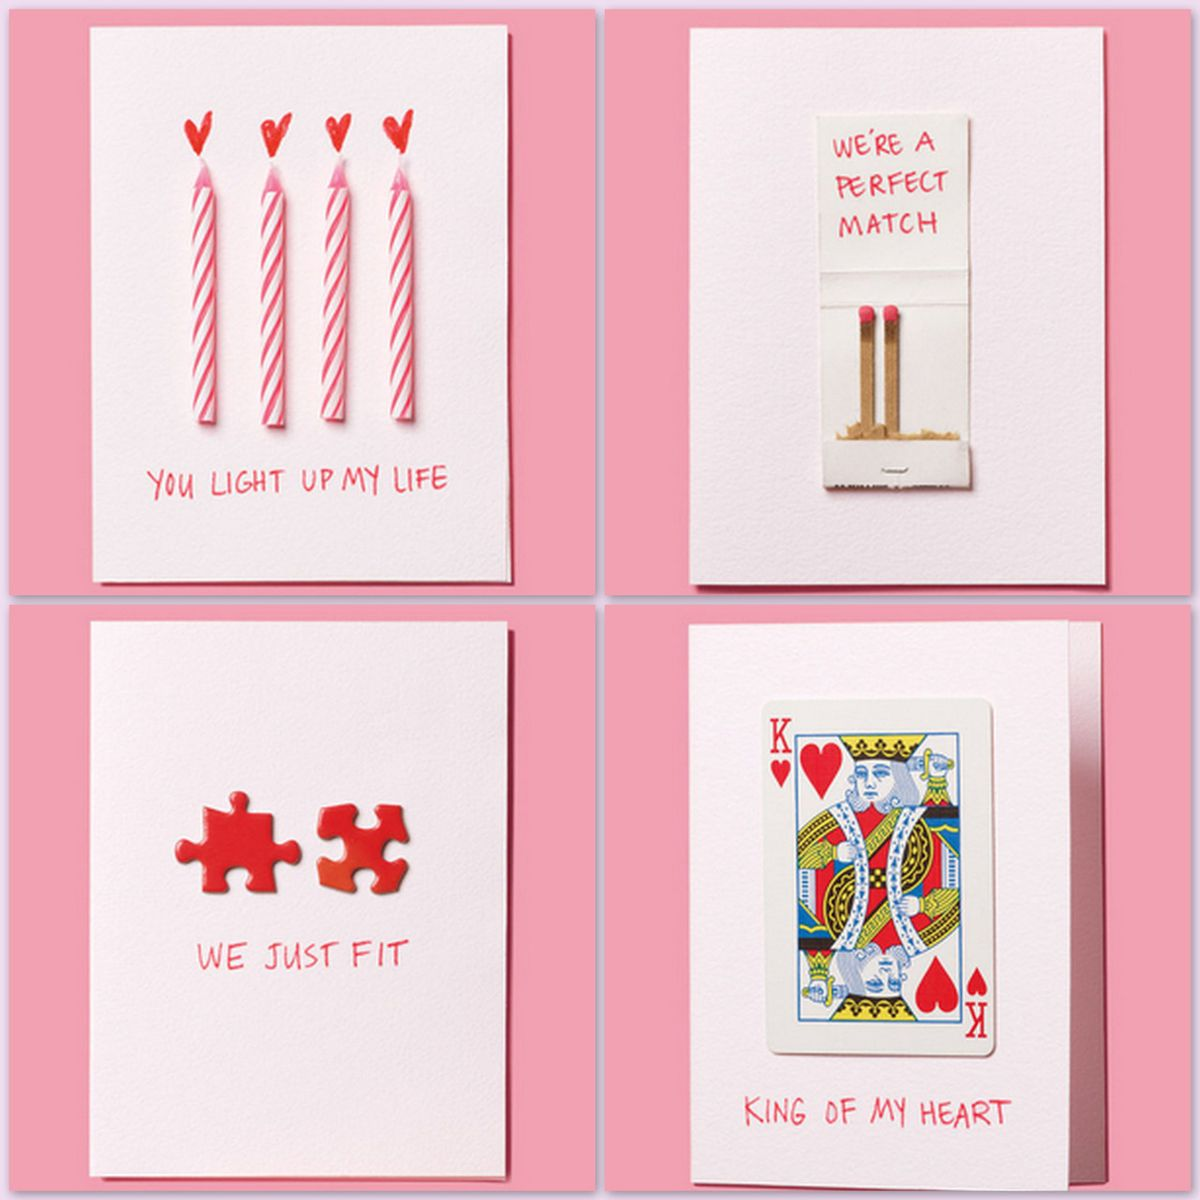 Five Cute Ideas For Valentine's Day Gifts ...Broke College Student Edition